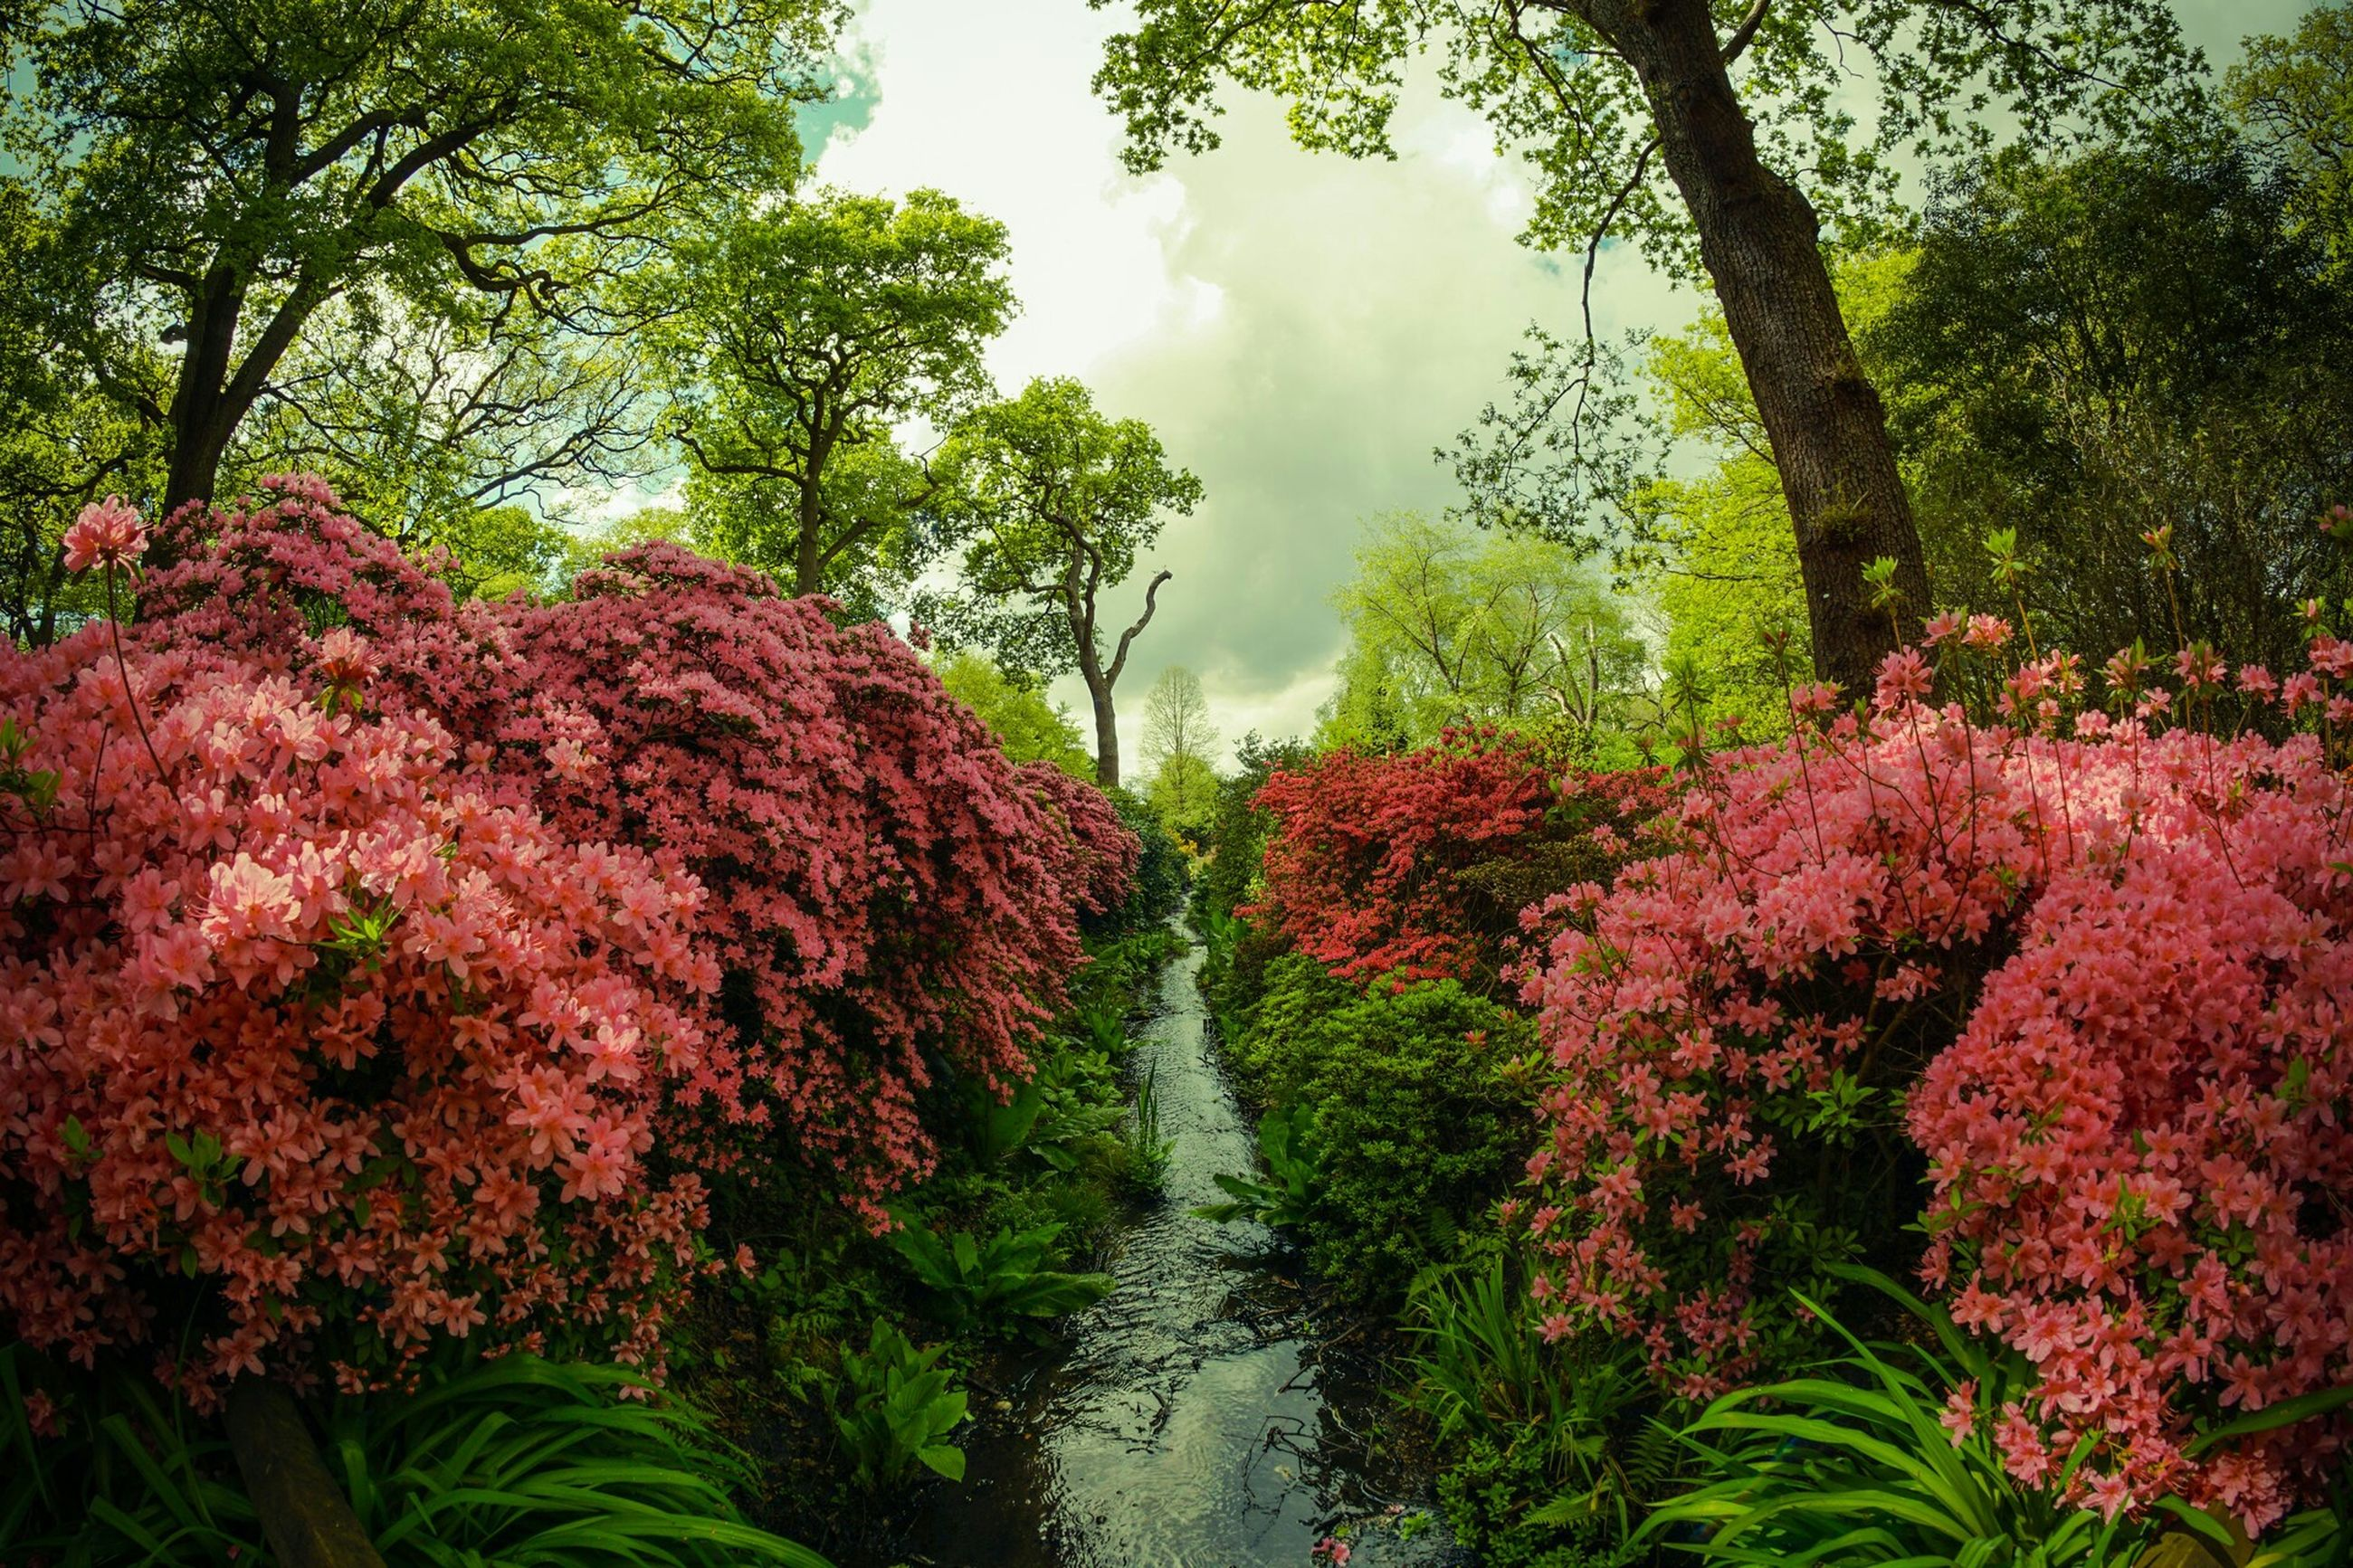 tree, growth, flower, beauty in nature, nature, plant, tranquility, tranquil scene, sky, freshness, red, green color, scenics, day, outdoors, branch, no people, leaf, park - man made space, pink color